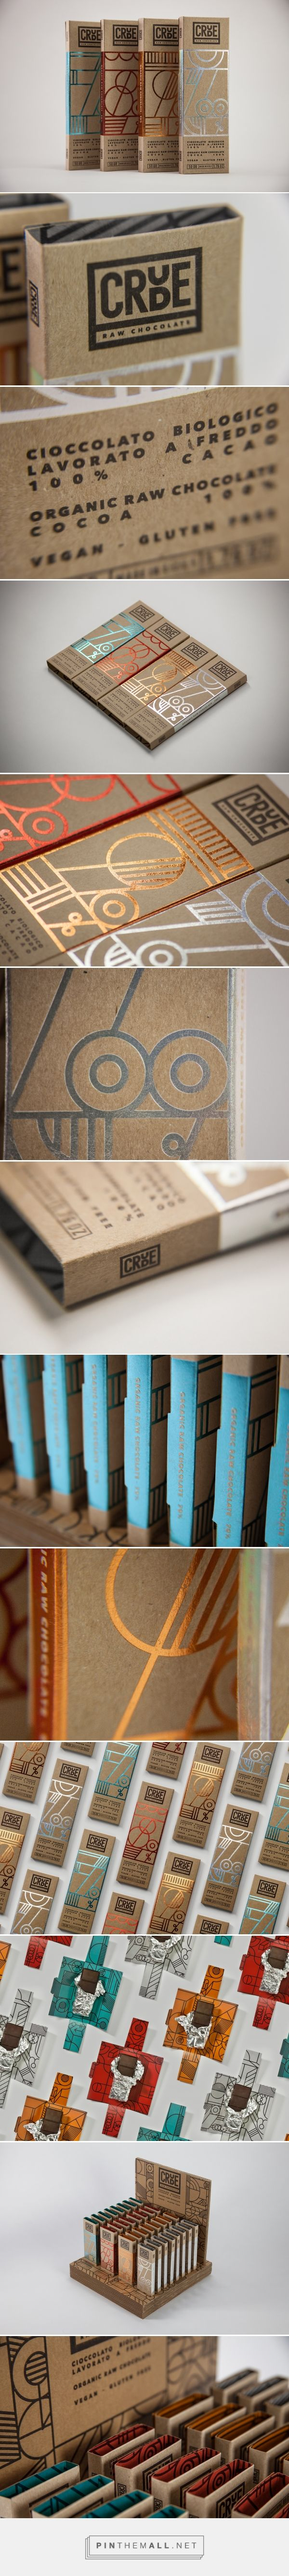 Crude - Raw Chocolate packaging design by Happycentro - http://www.packagingoftheworld.com/2016/12/crude-raw-chocolate.html